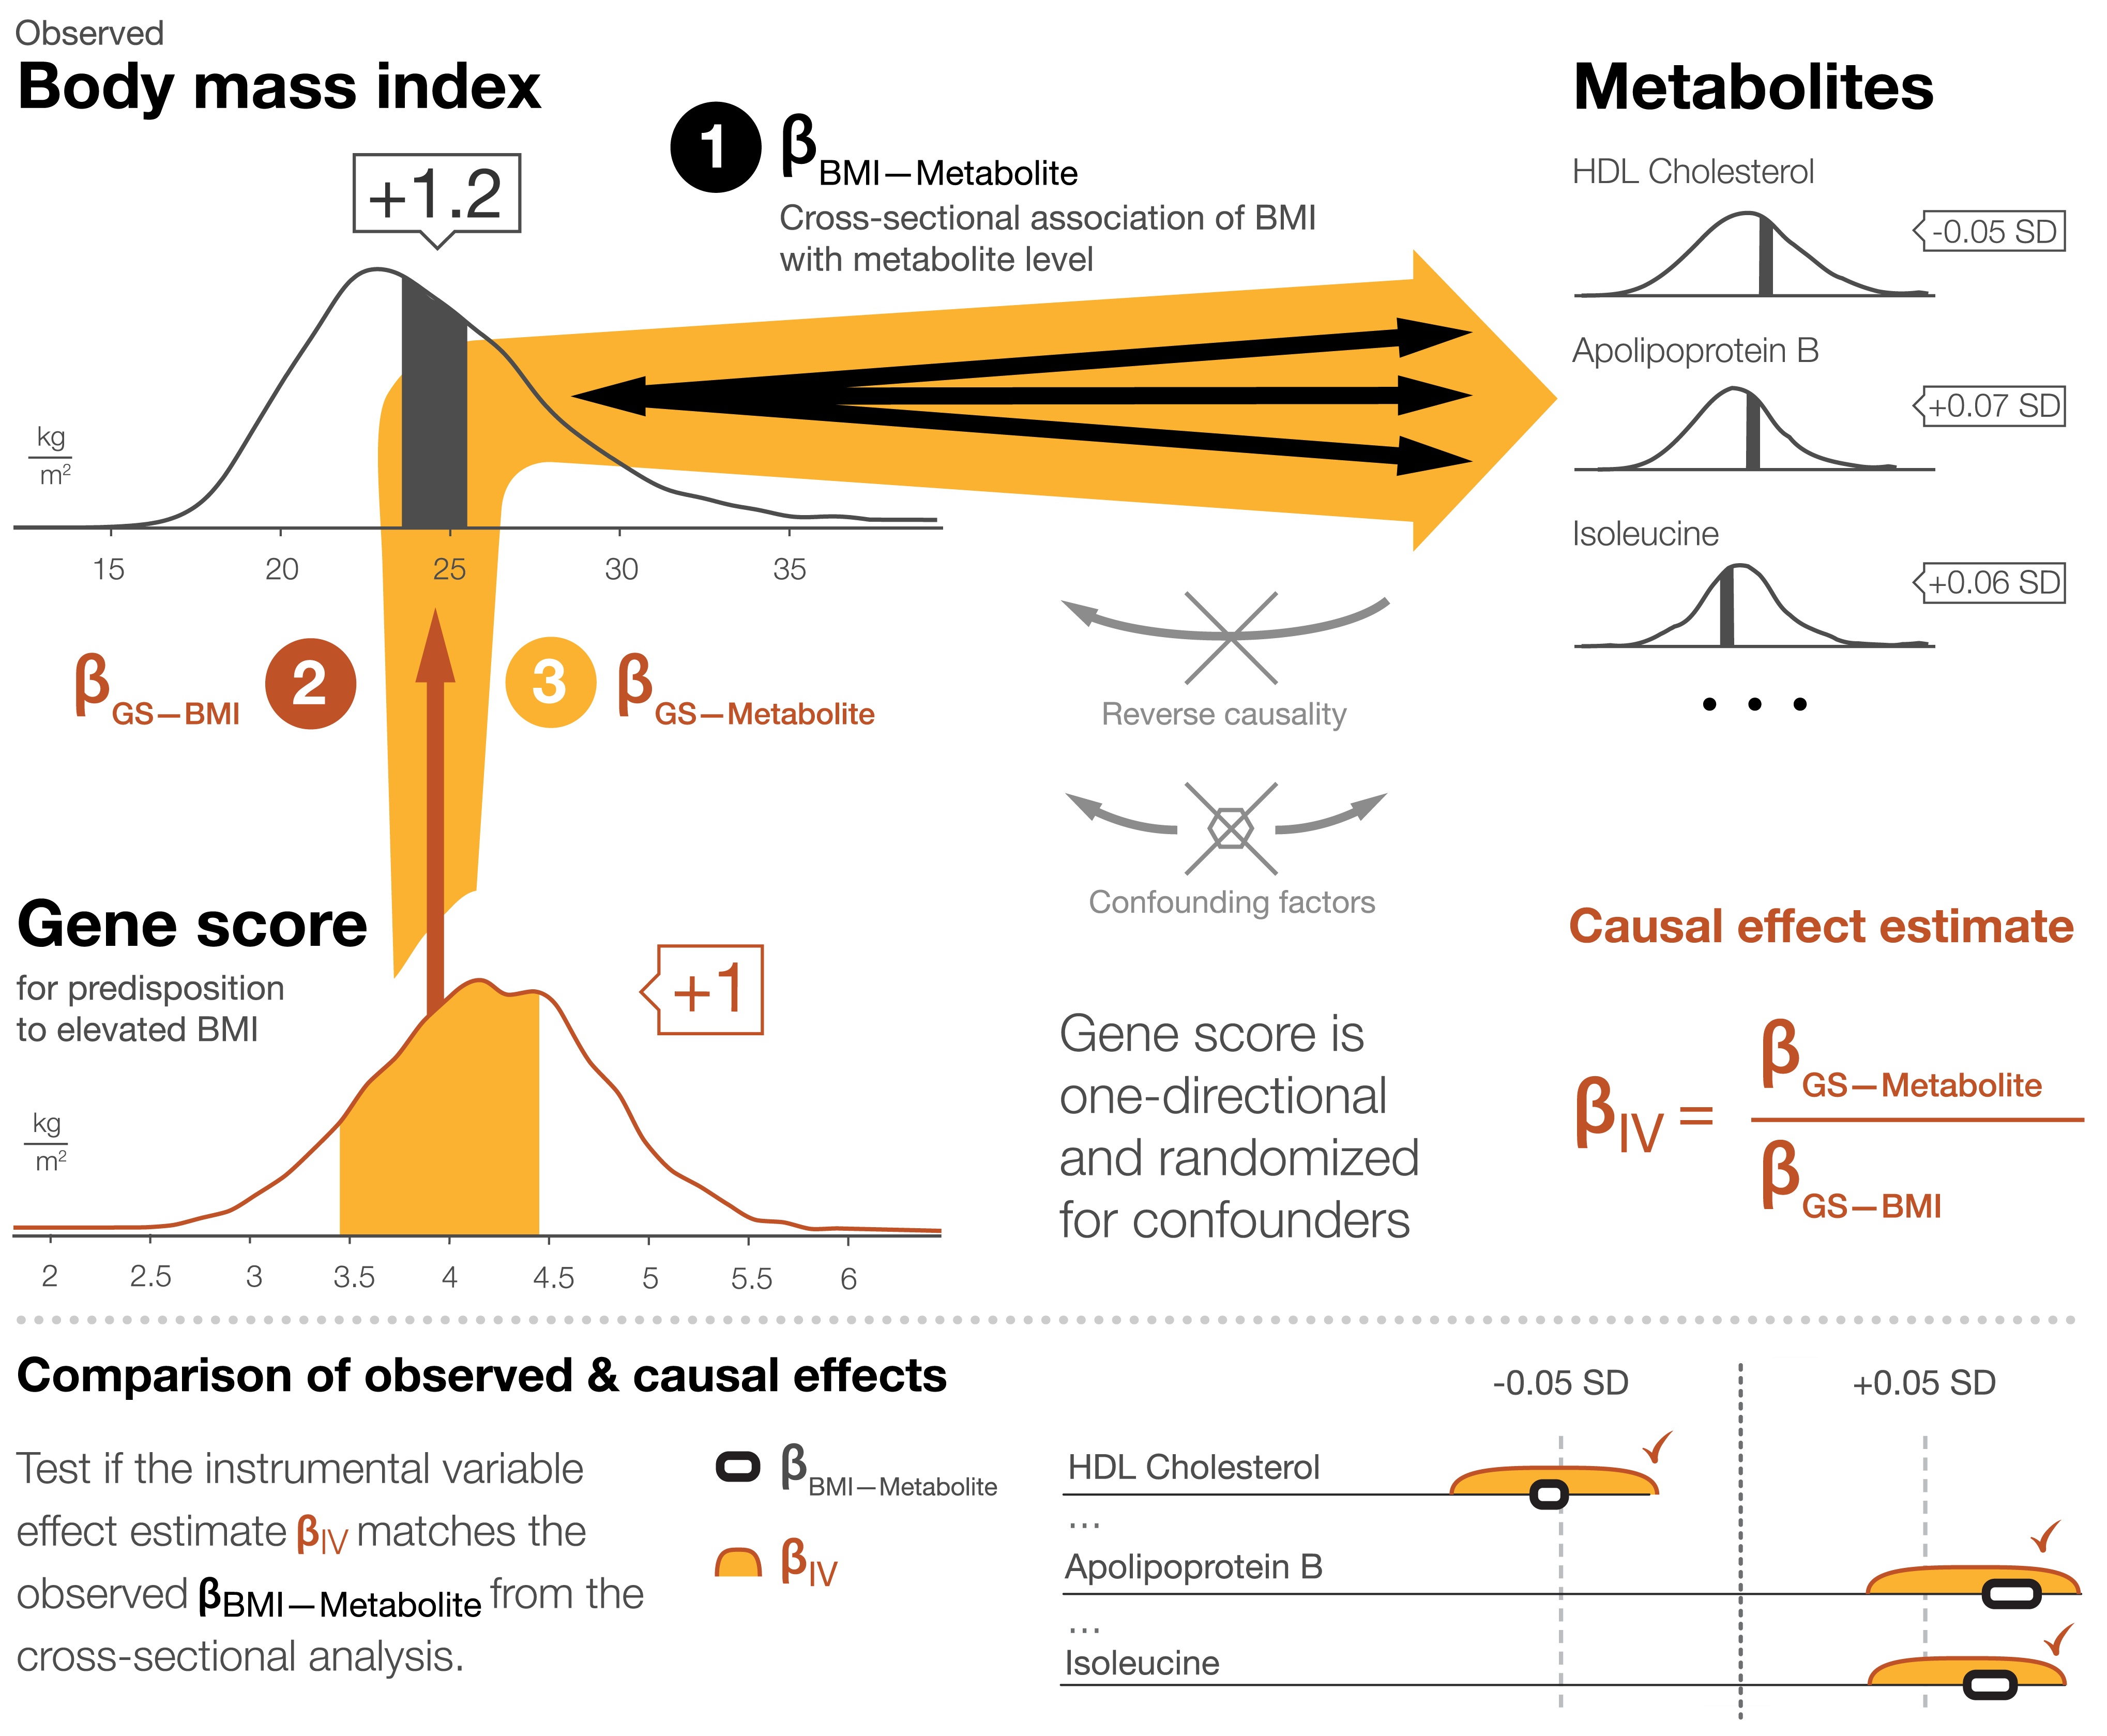 Mendelian randomization framework for estimating causal effects of BMI on the systemic metabolite profile.